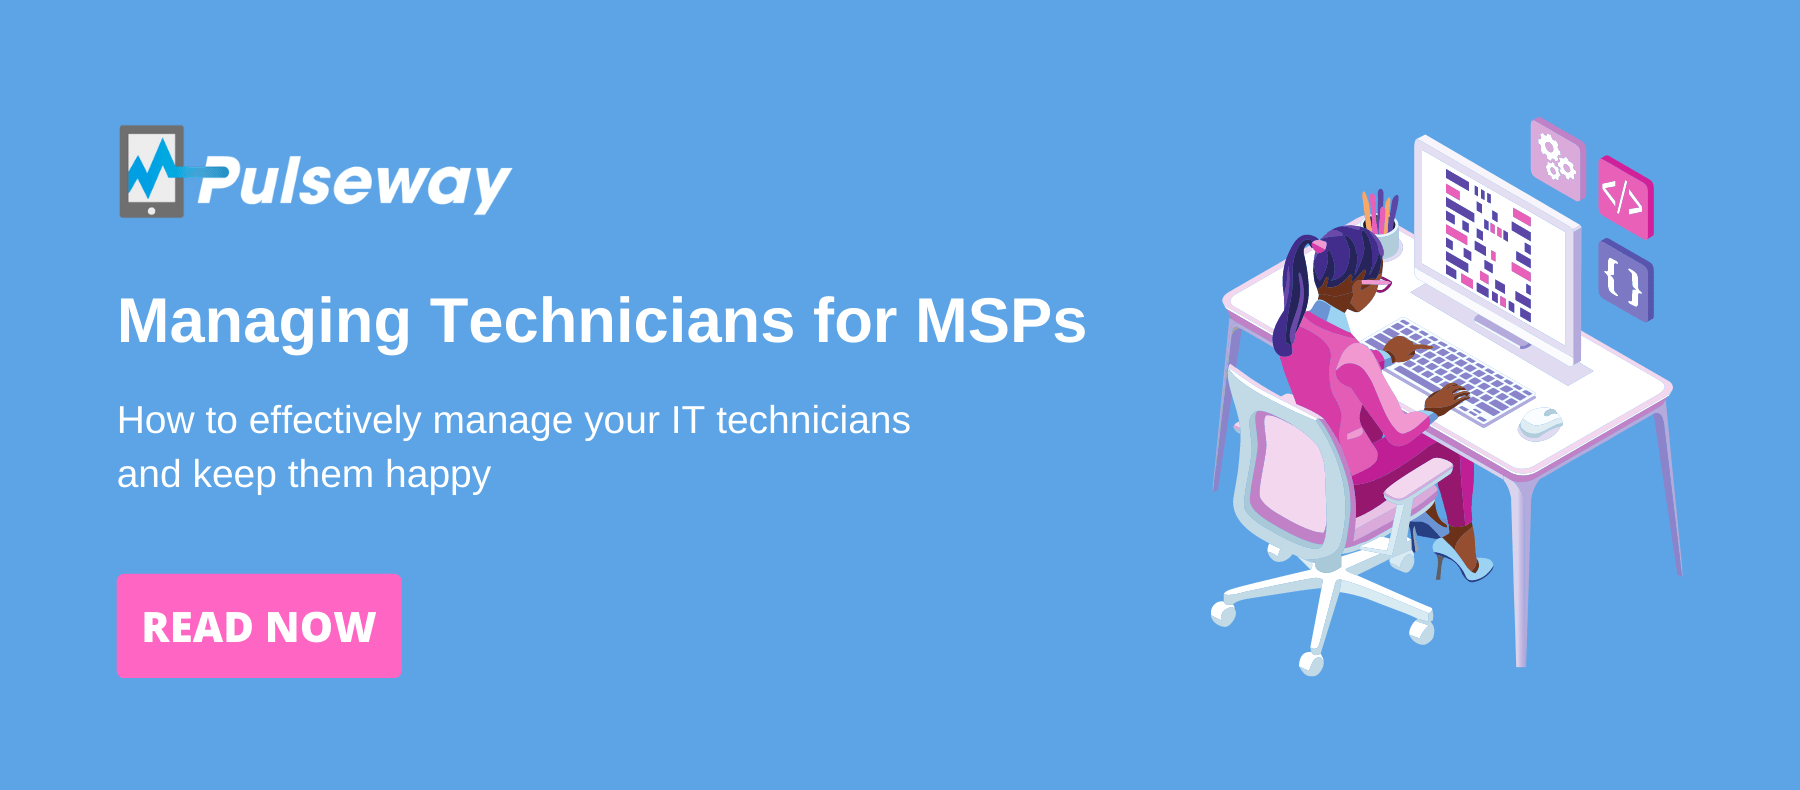 Managing Technicians for MSPs